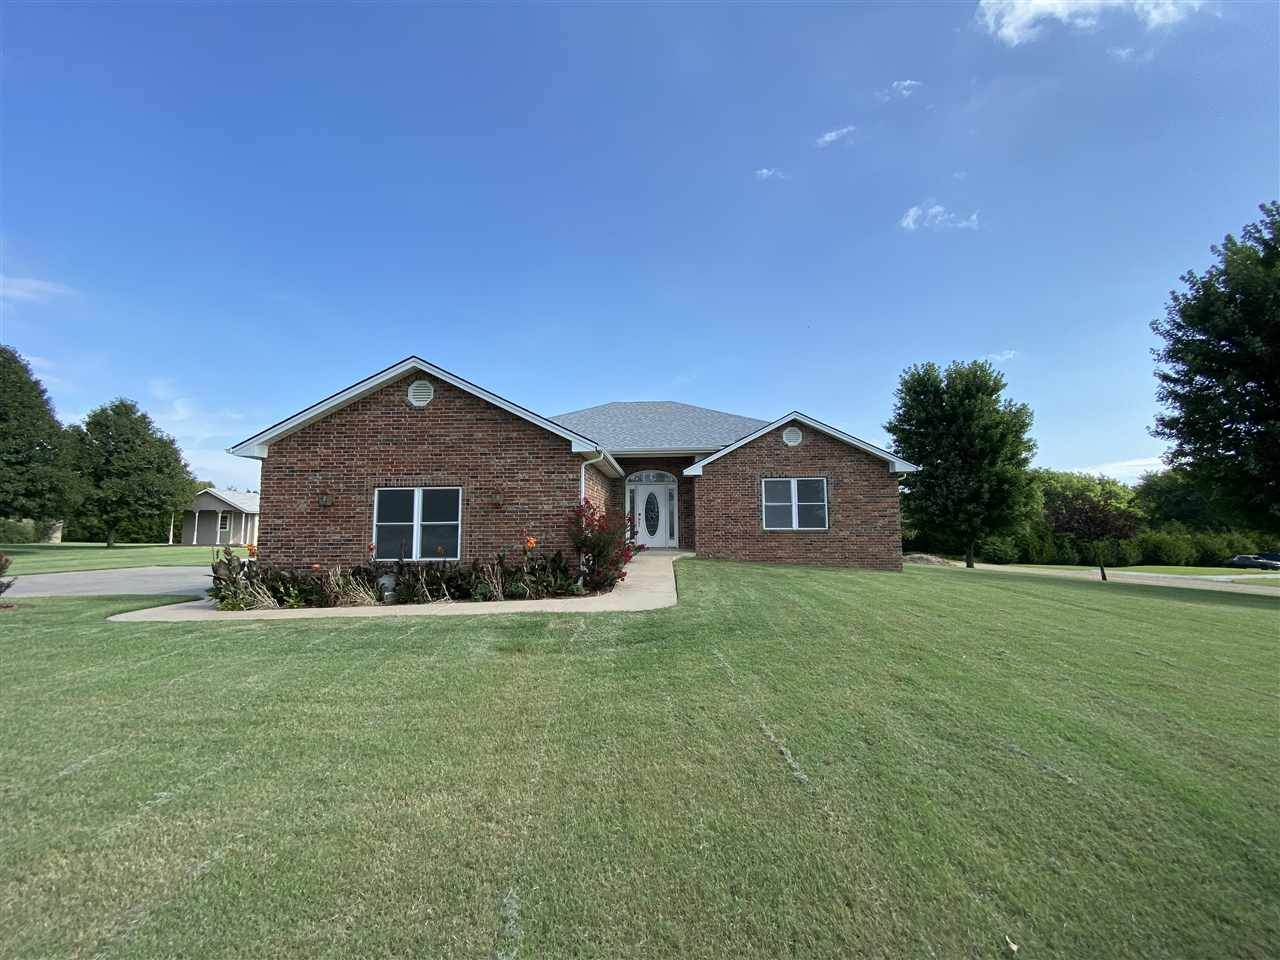 10283 Robin Drive - Photo 1